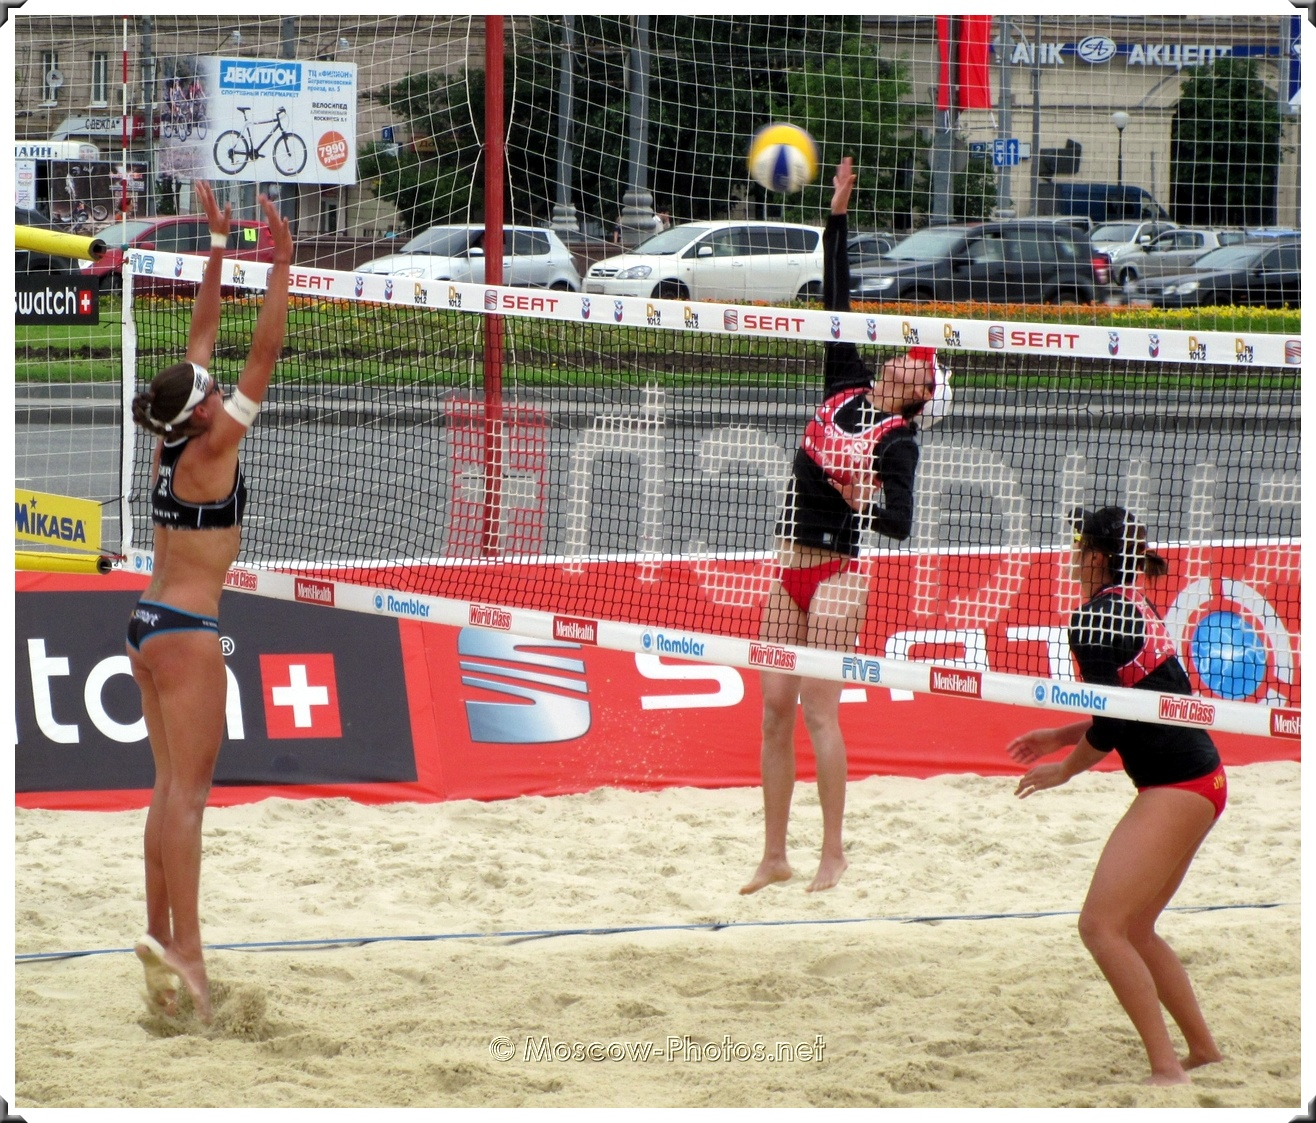 BEACH VOLLEYBALL DIRECT ATTACK